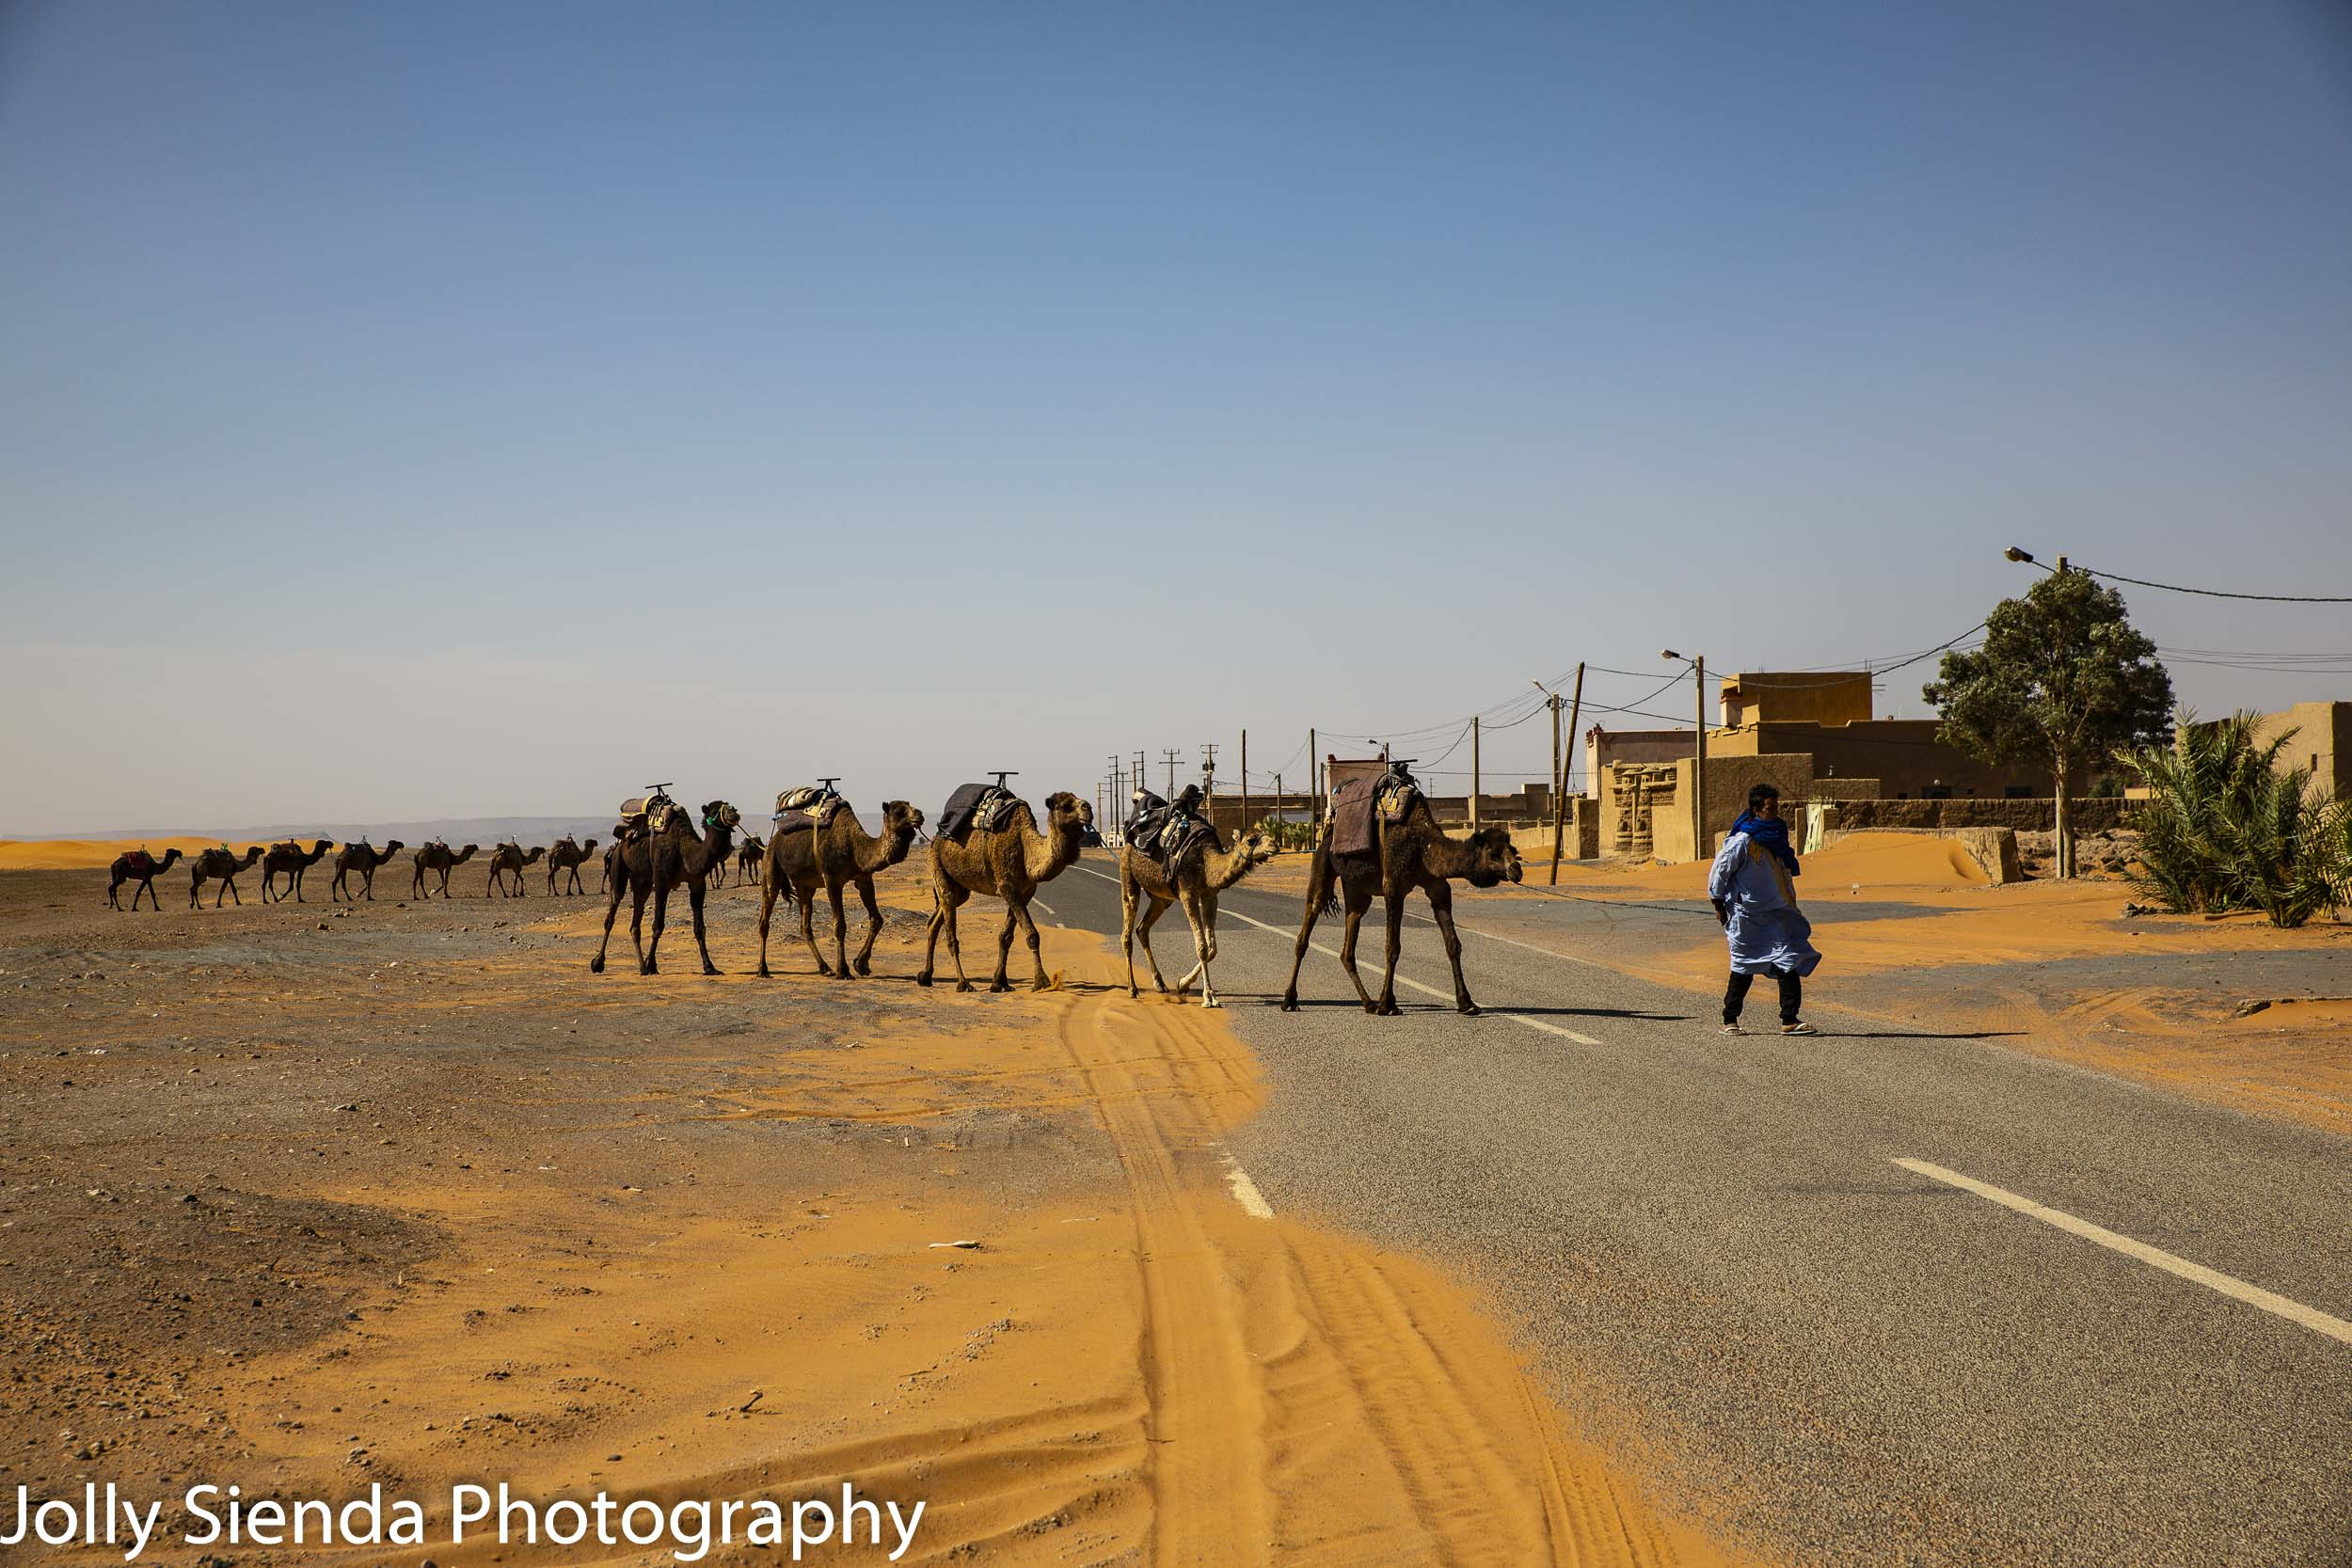 Camel herder with his camels crossing the street